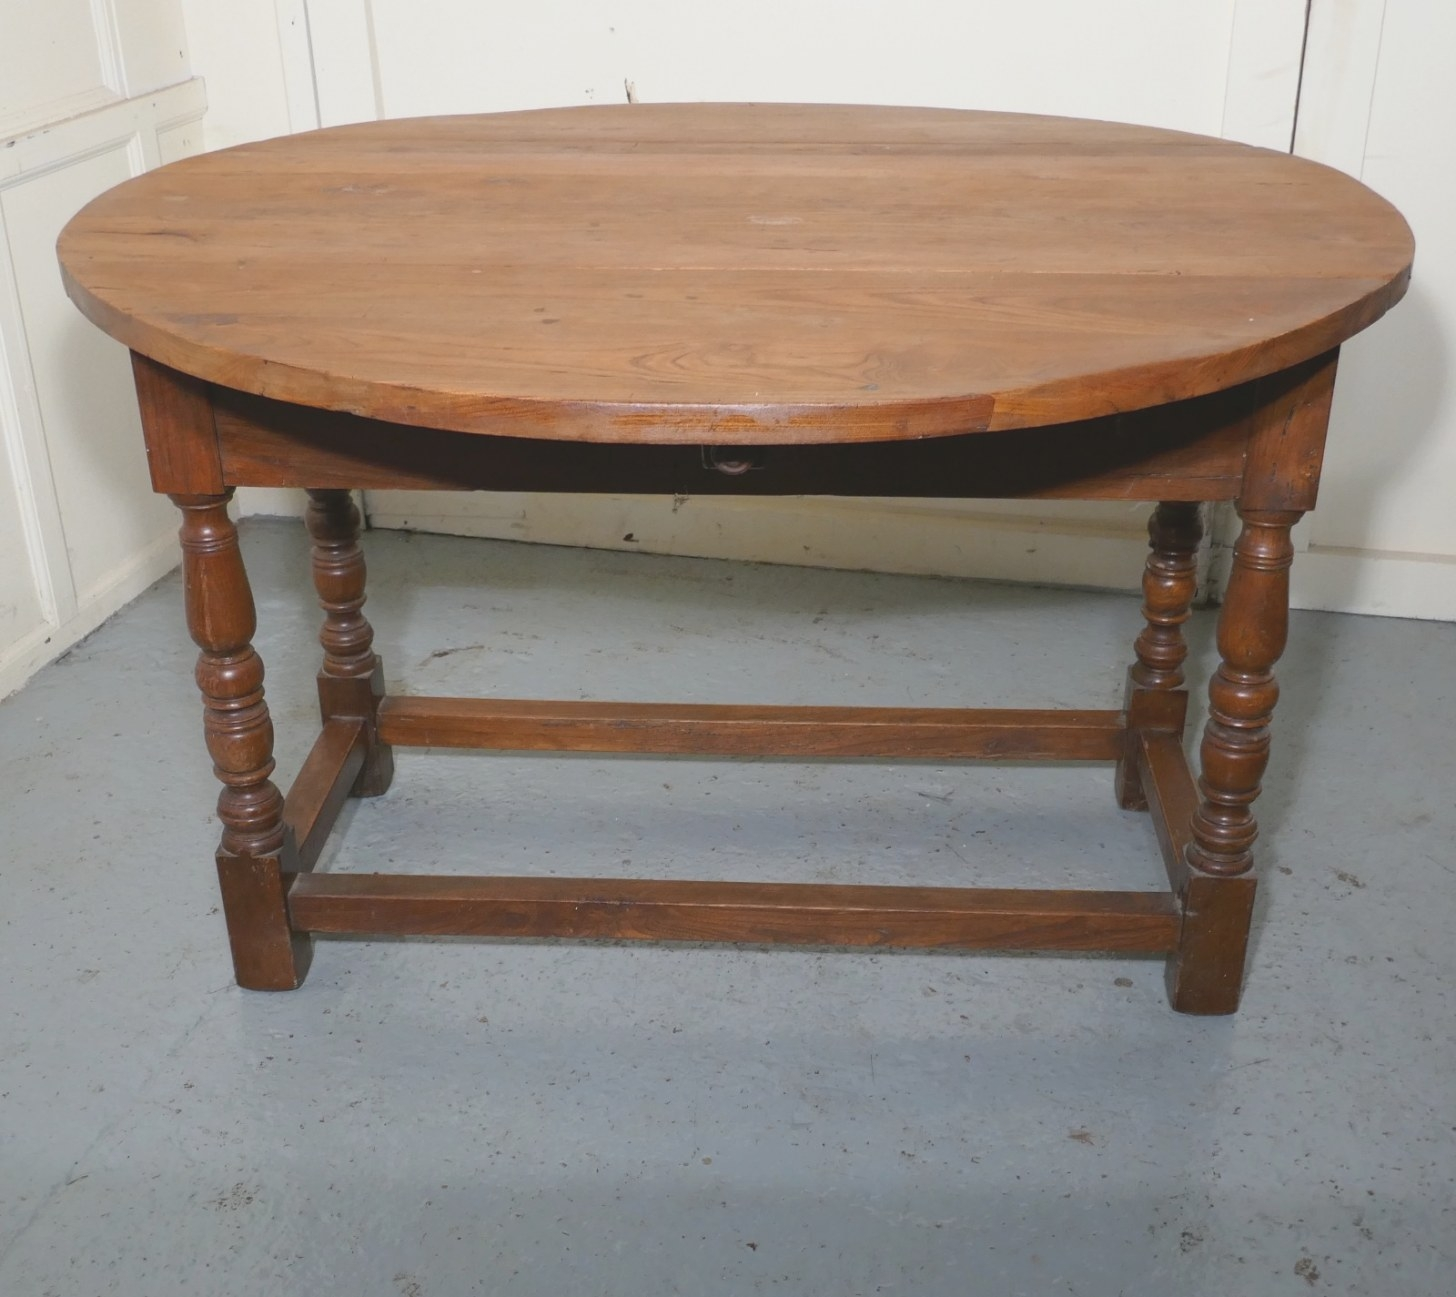 French Country Elm Drop Leaf Table, Kitchen Dining Table regarding Drop Leaf Kitchen Table